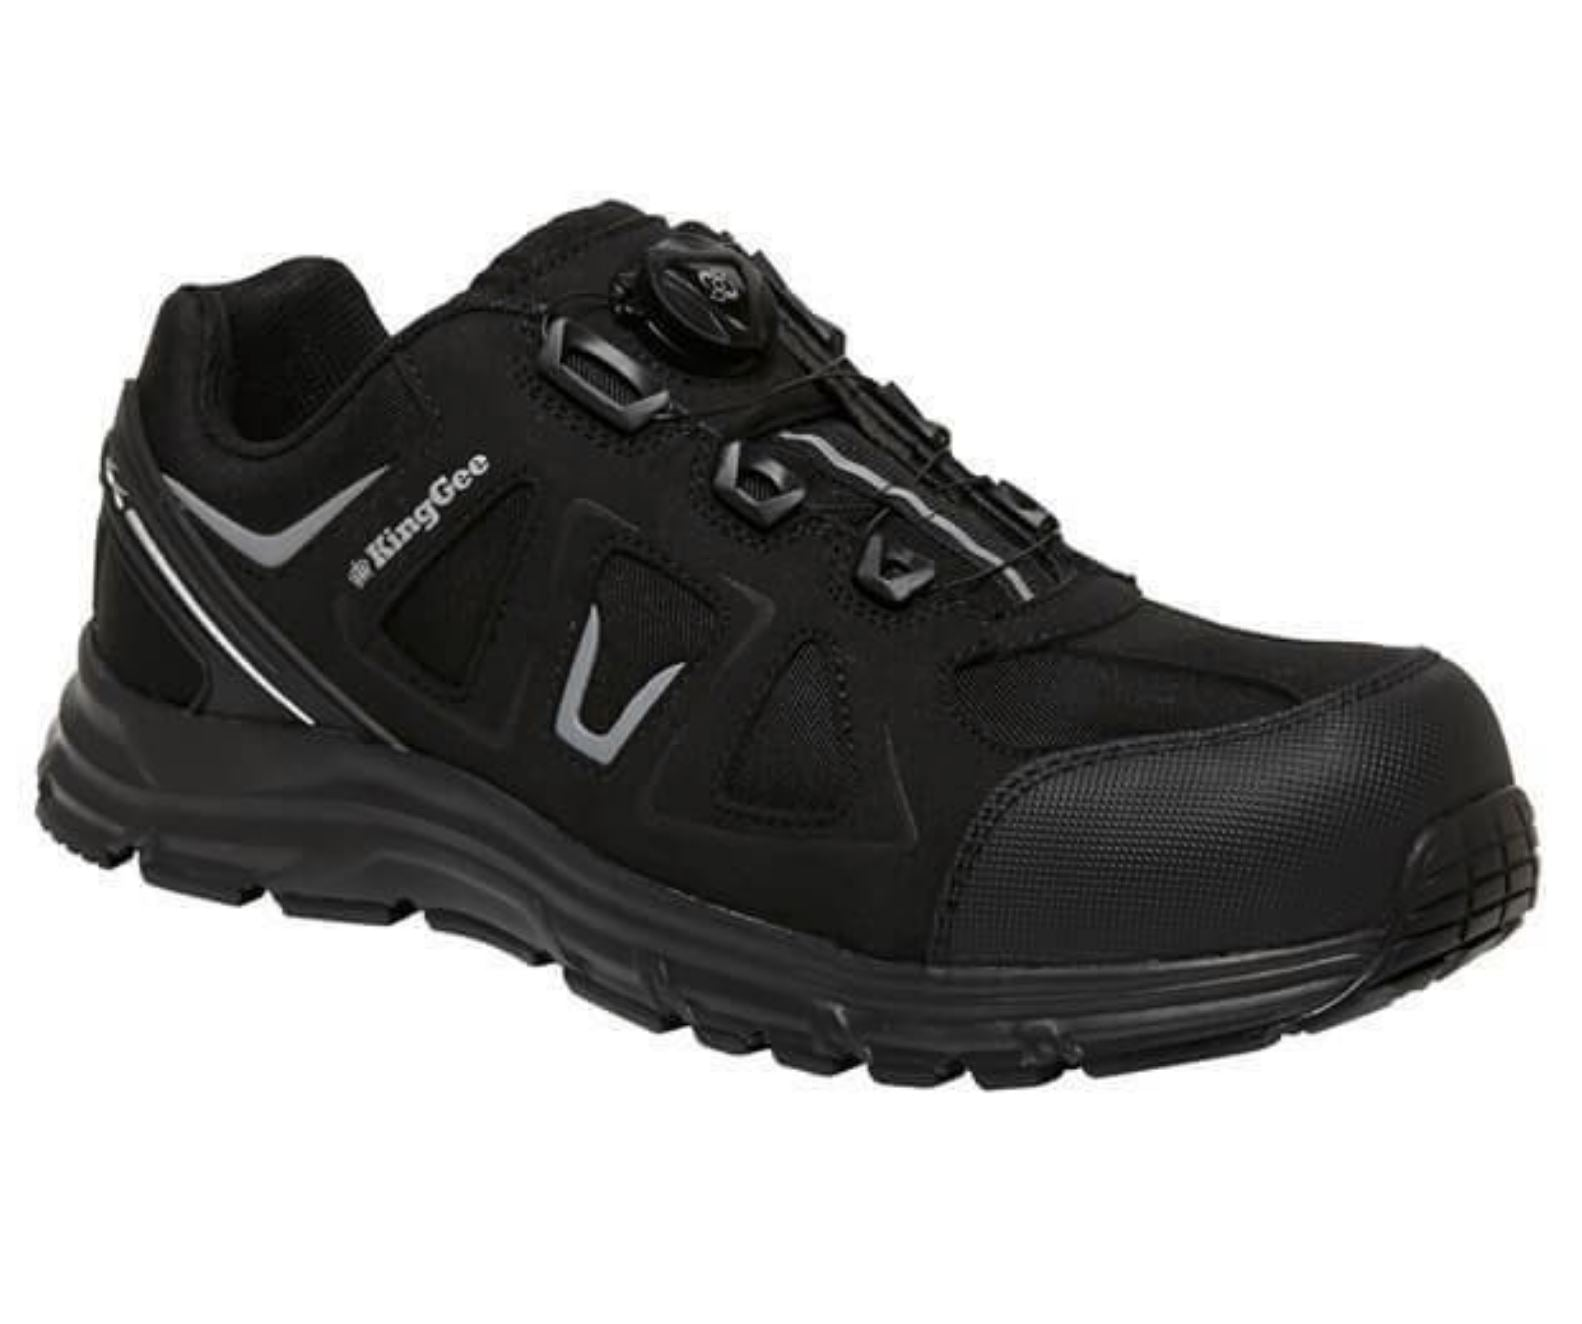 King Gee Comp-Tec BOA Work Shoes - Black Workwear King Gee